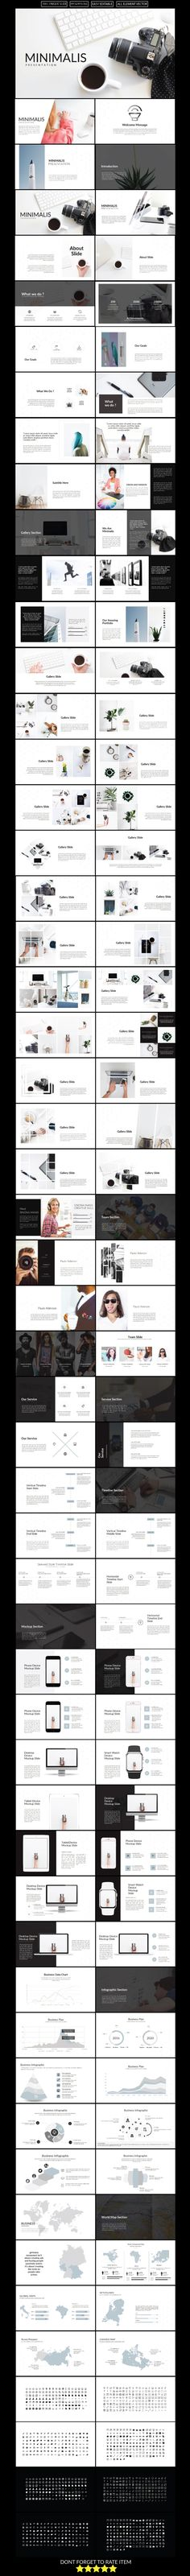 Minimalis Multipurpose Powerpoint Presentation - #PowerPoint Templates Presentation Templates Download here: https://graphicriver.net/item/minimalis-multipurpose-powerpoint-presentation/18218306?ref=classicdesignp